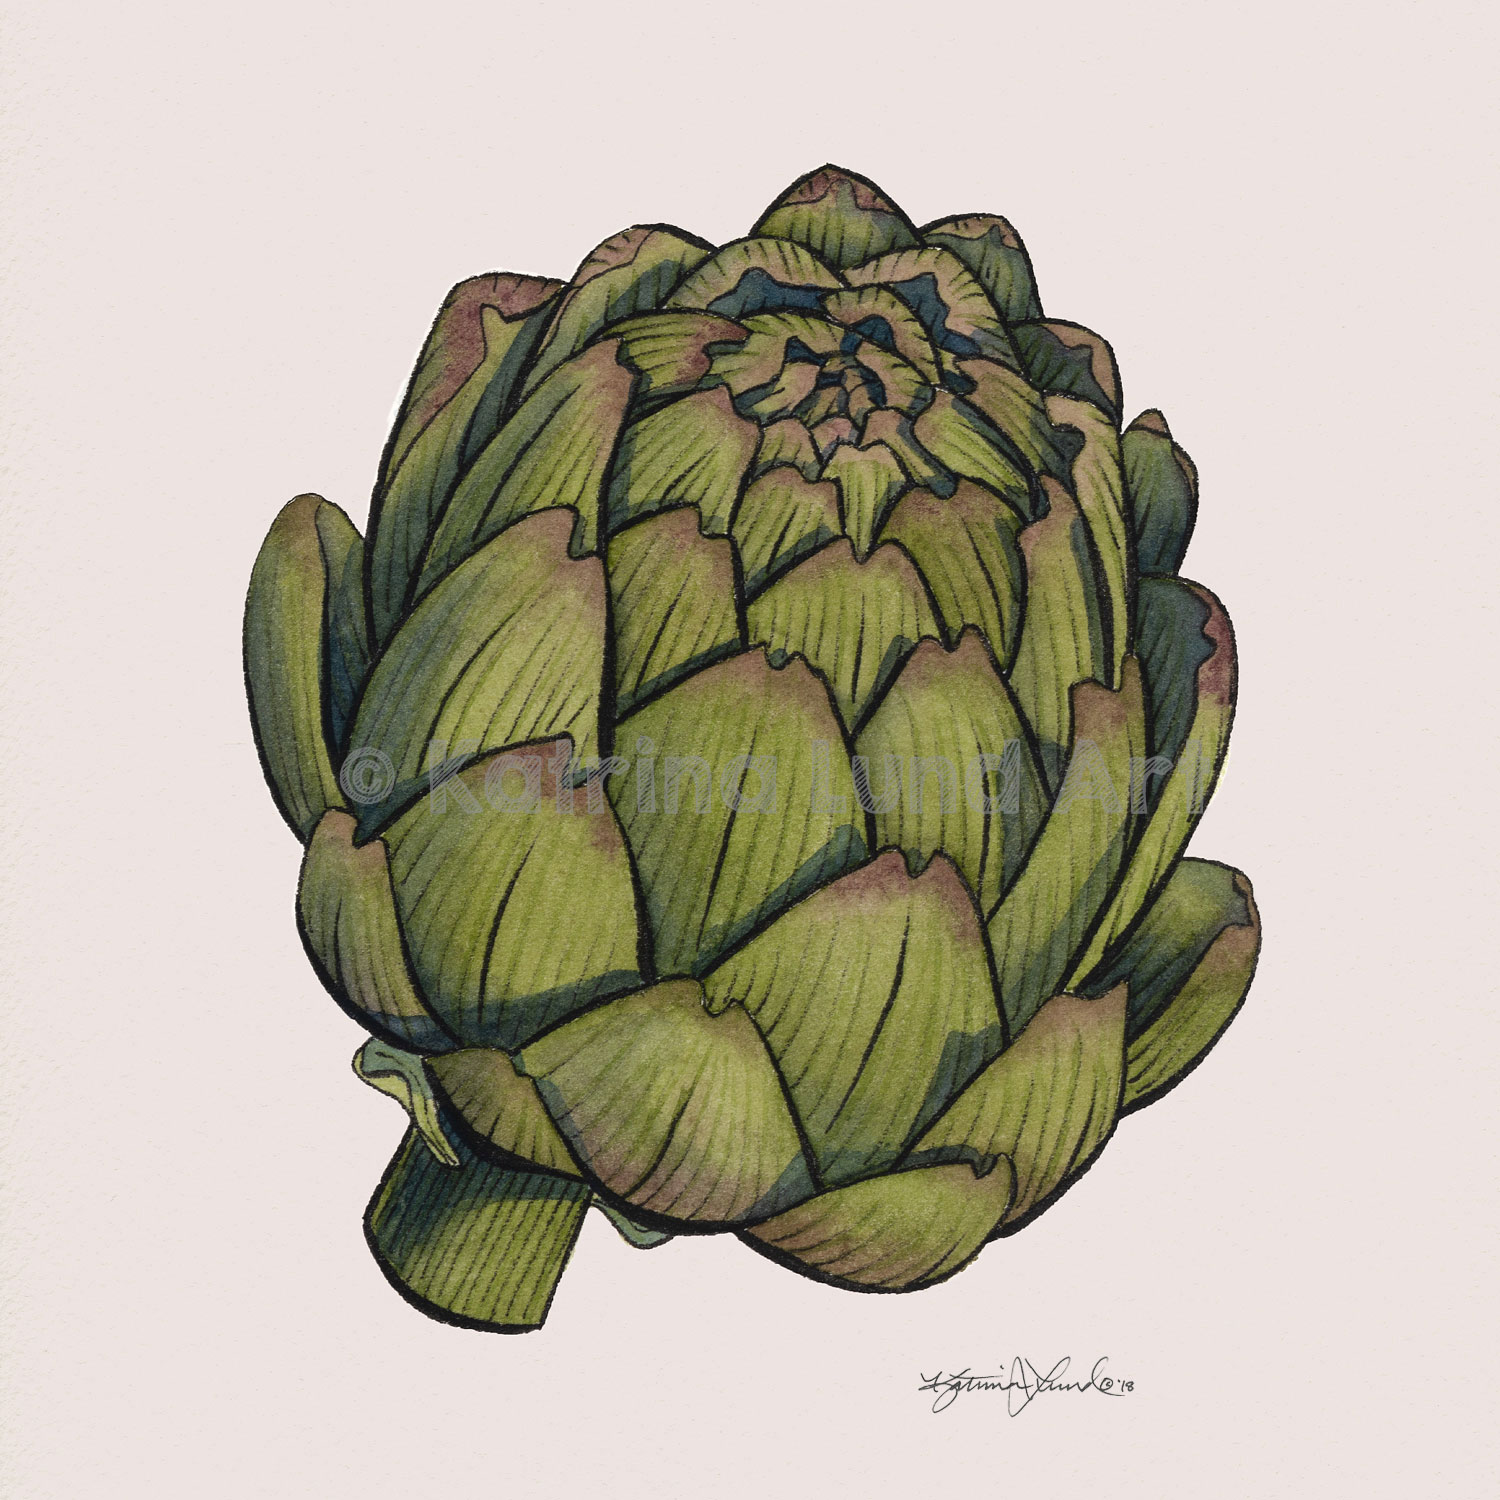 Artichoke by Day,  Pen & ink combined with watercolor